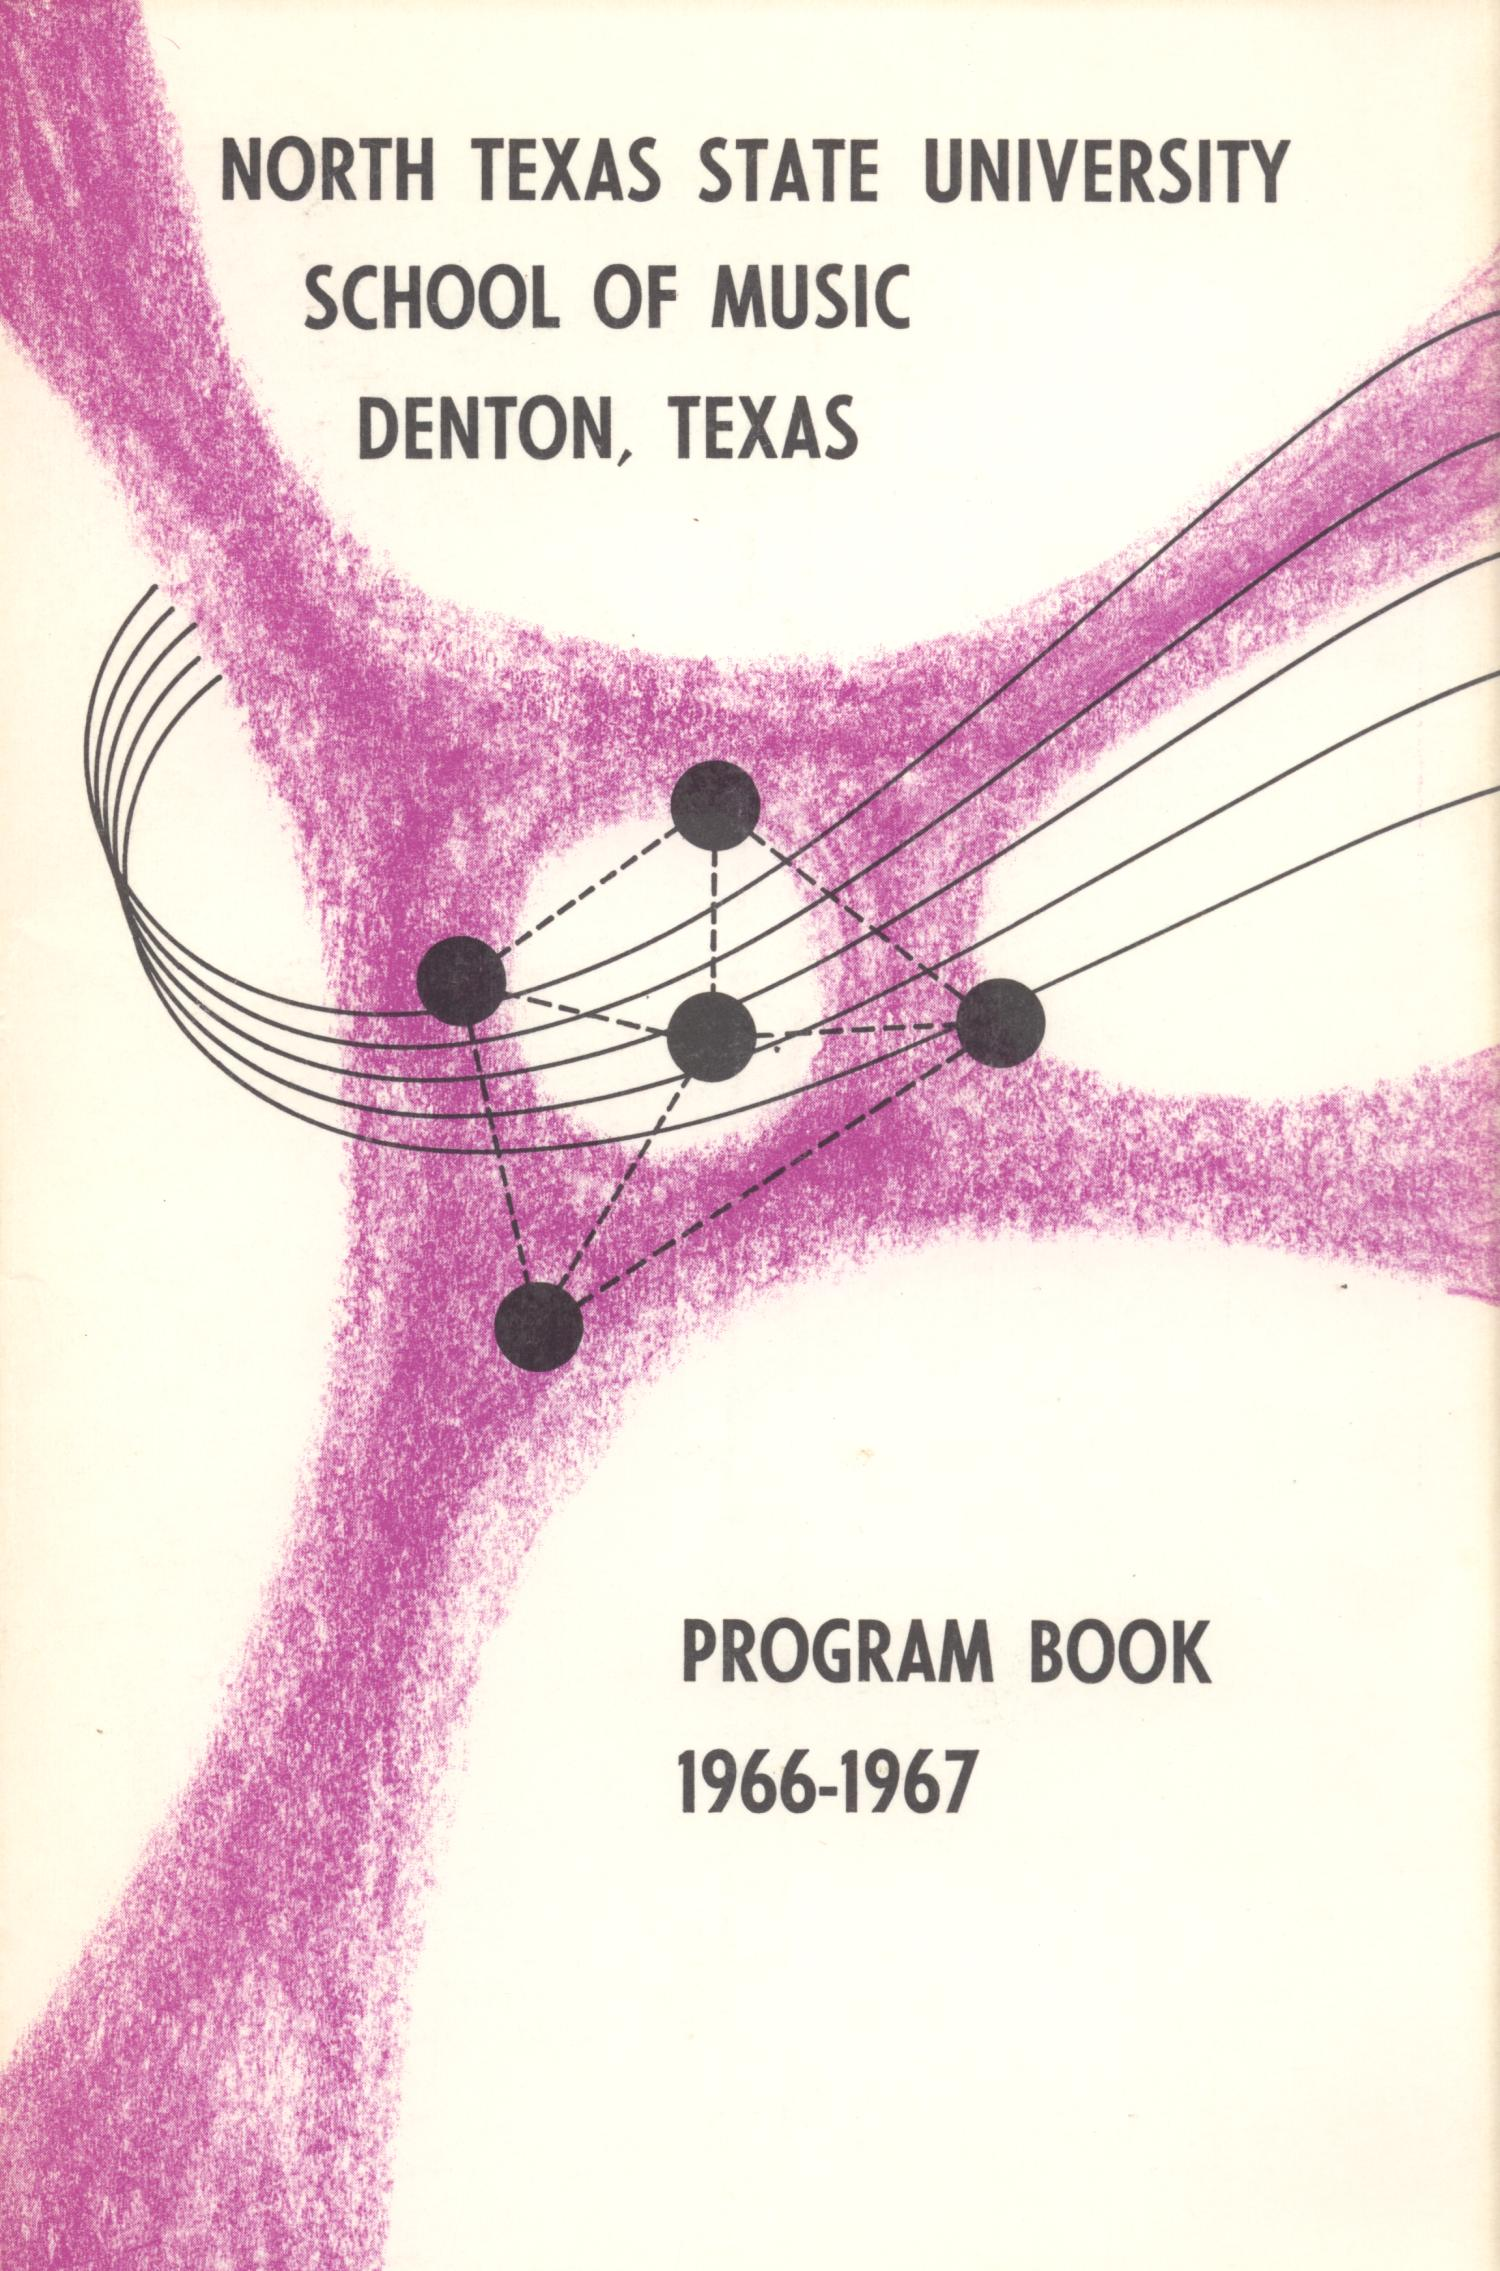 School of Music Program Book 1966-1967                                                                                                      Front Cover